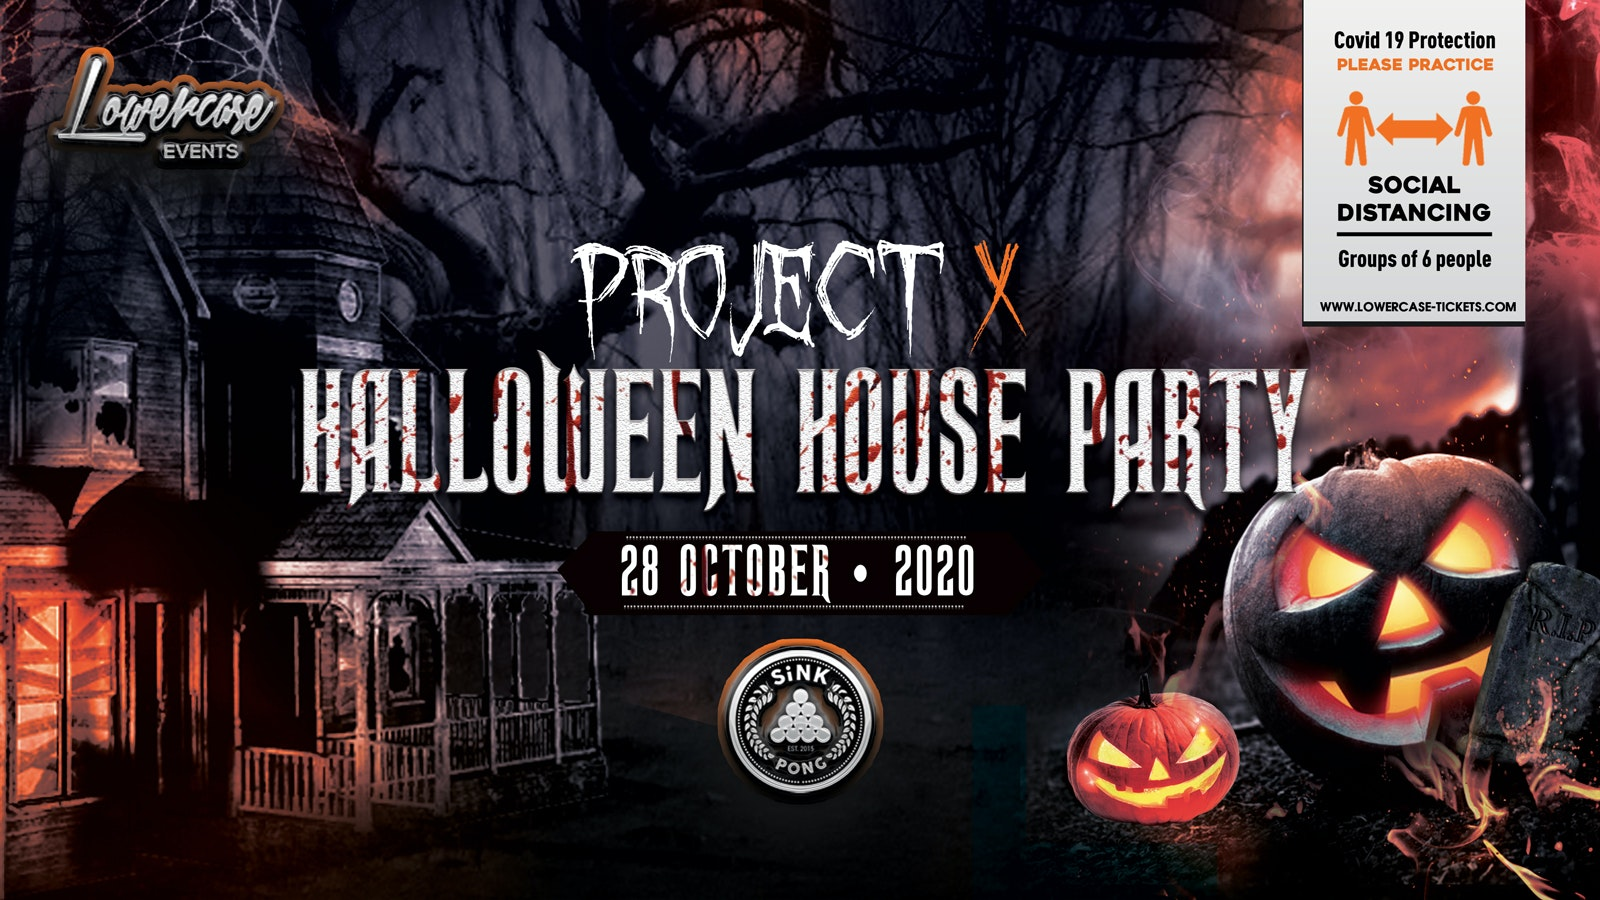 The Project X Hip Hop Halloween Party @ SiNK PONG! This event will sell out